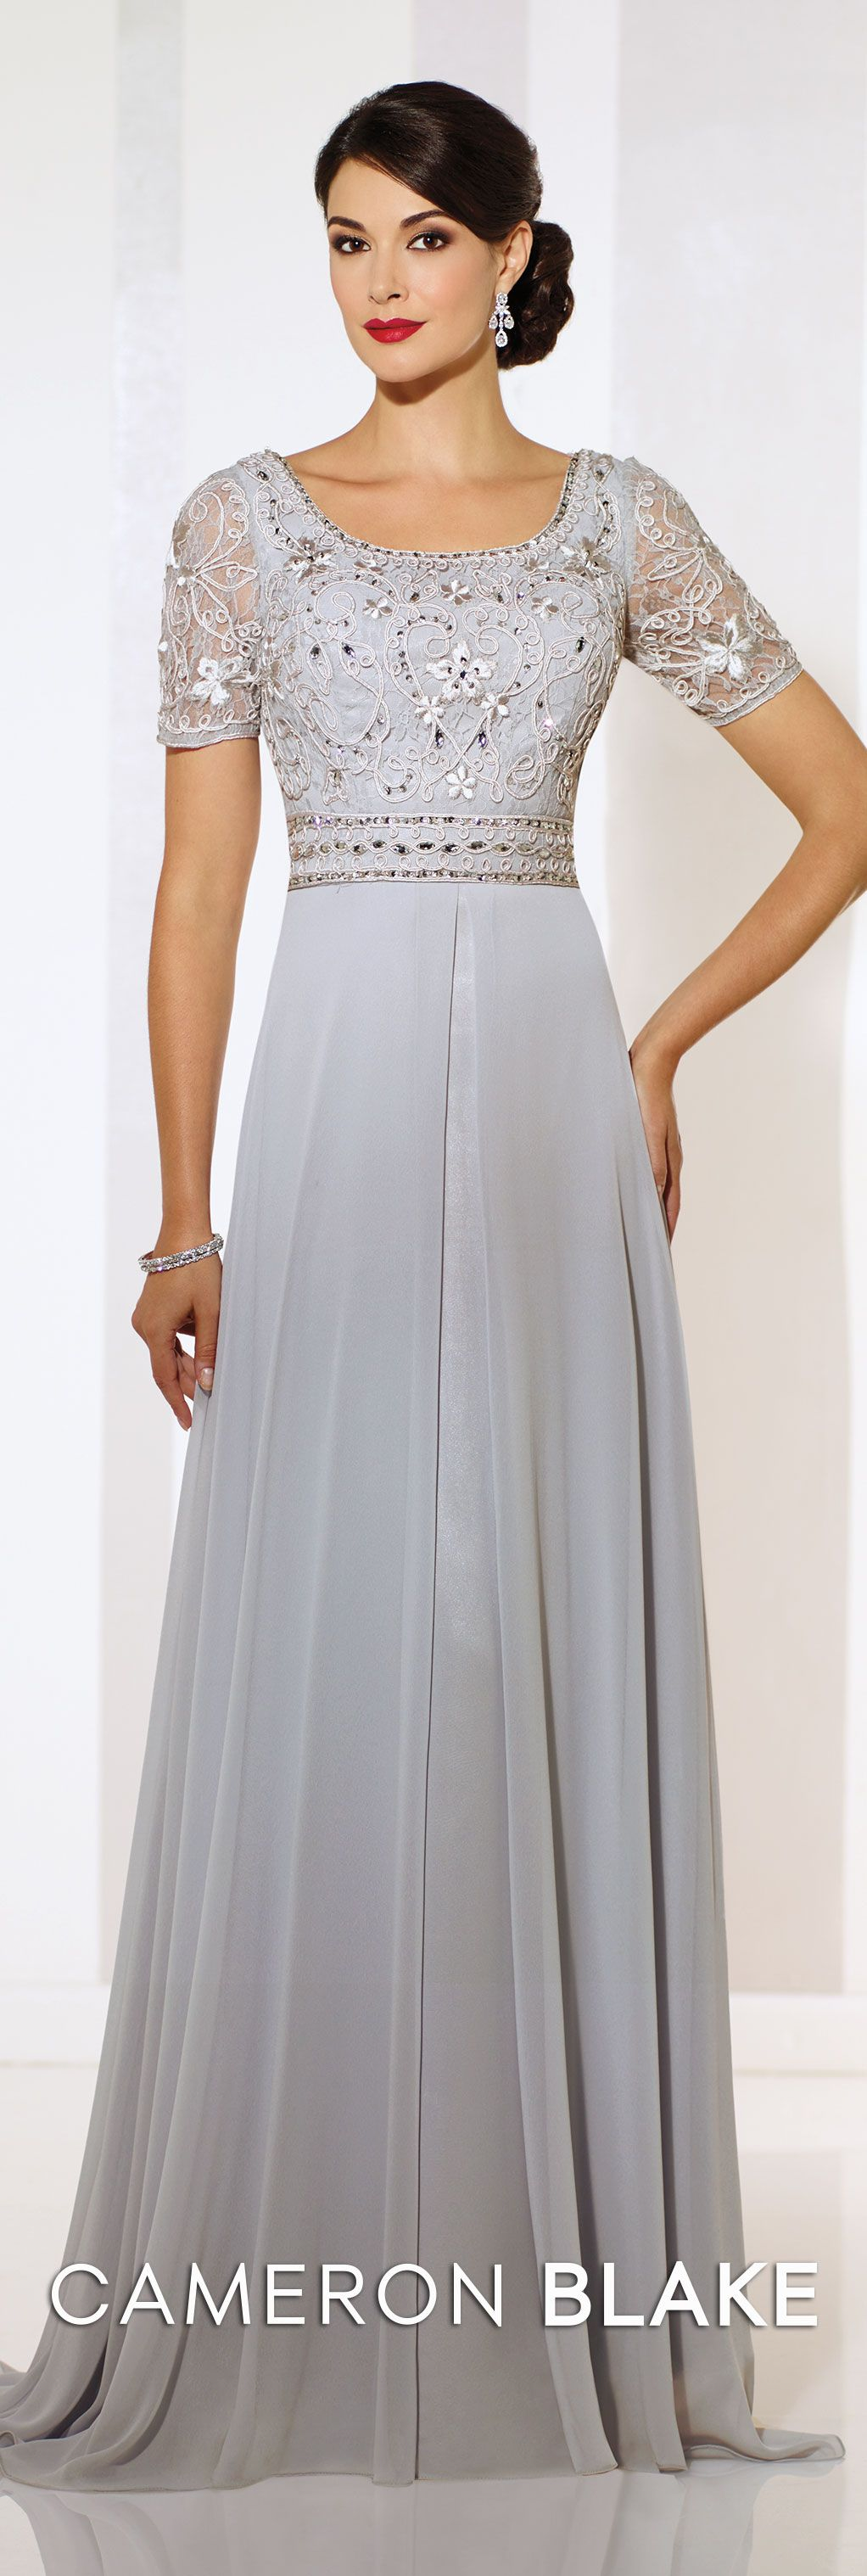 Wedding dress and jacket for guest  Cameron Blake Mother of the Bride Dresses u Dress Suits   ropa